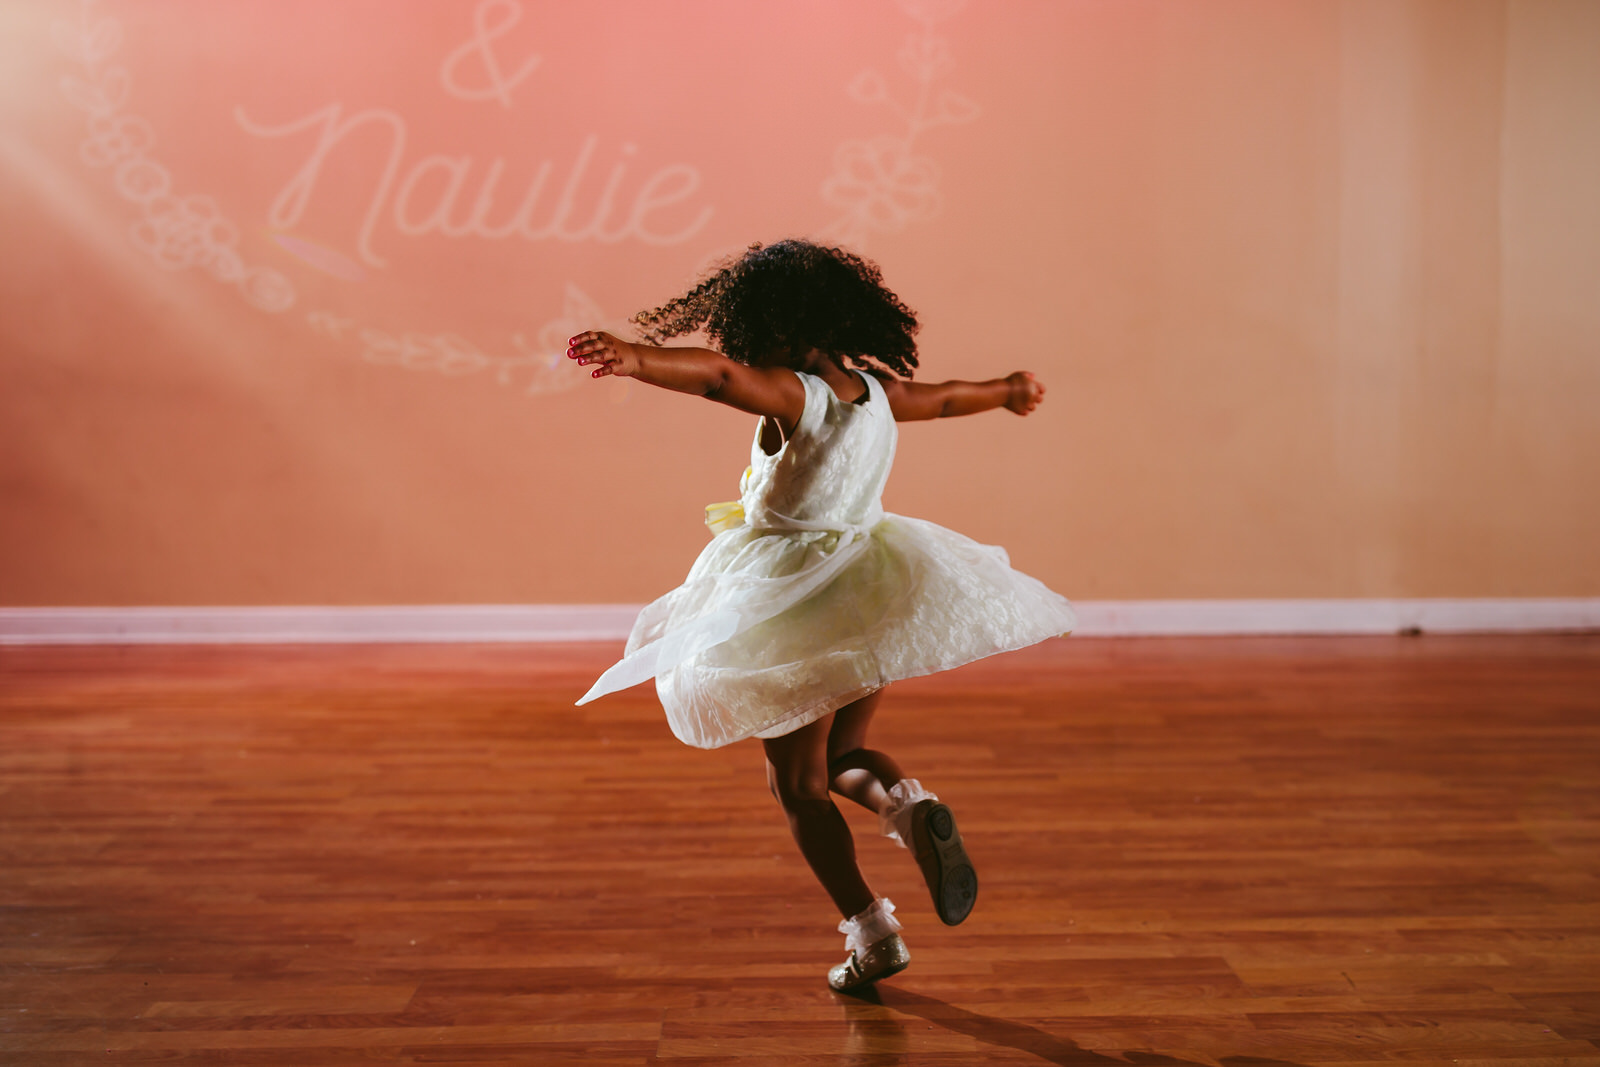 Flower_Girl_Dancing_Benvenuto_Wedding_Moments_Tiny_House_Photo.jpg